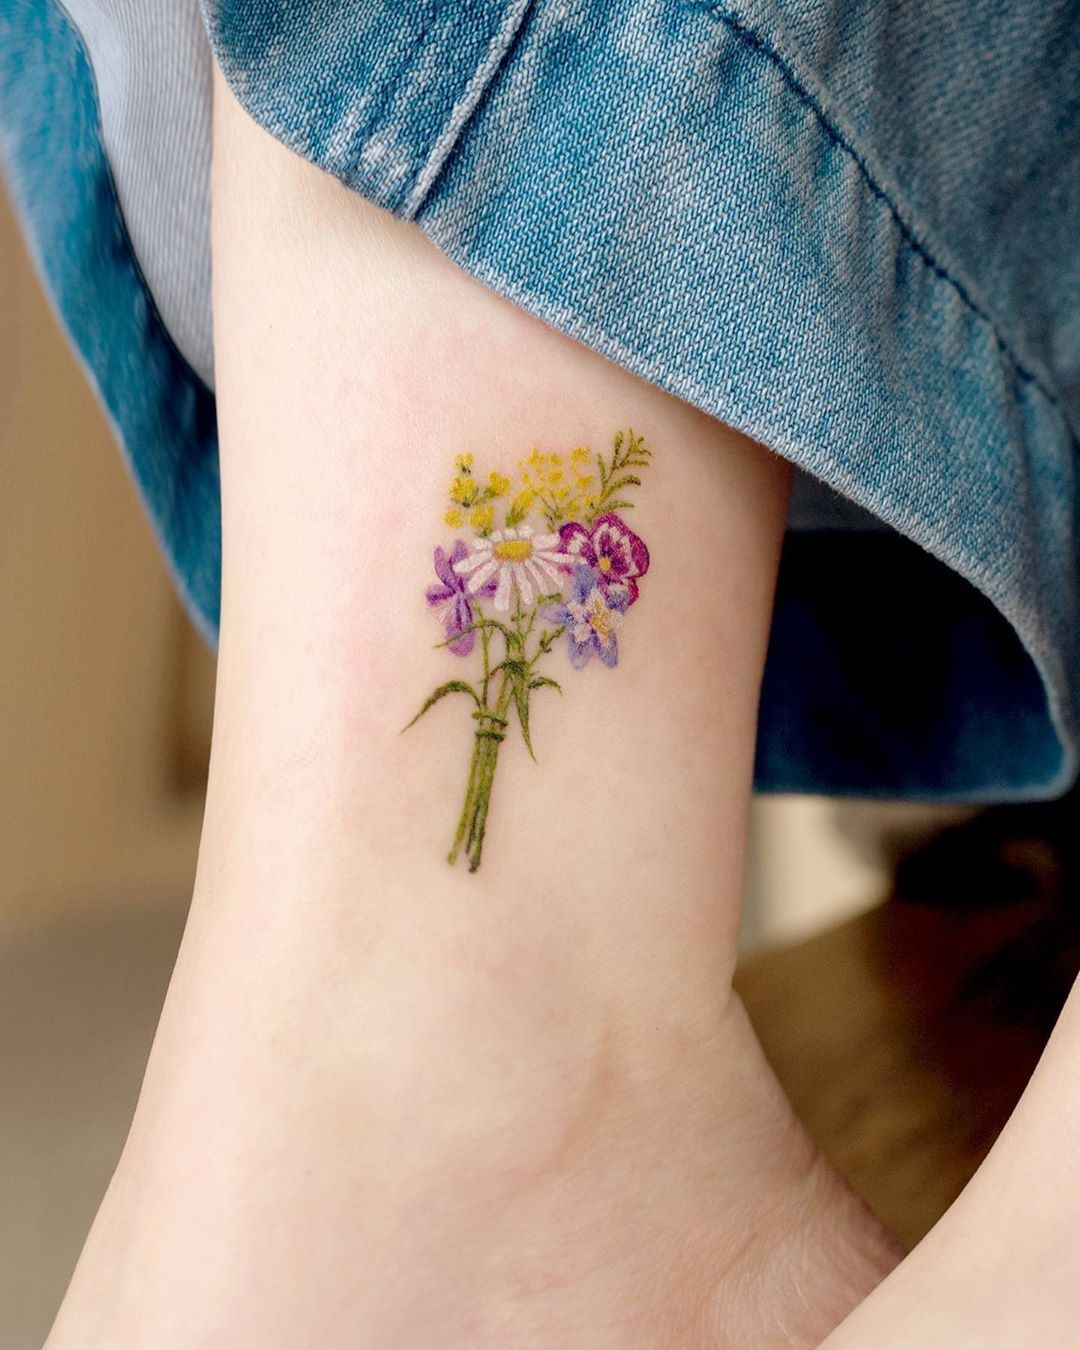 The Best Daisy Tattoo Ideas and Meaning in 2020 Daisy